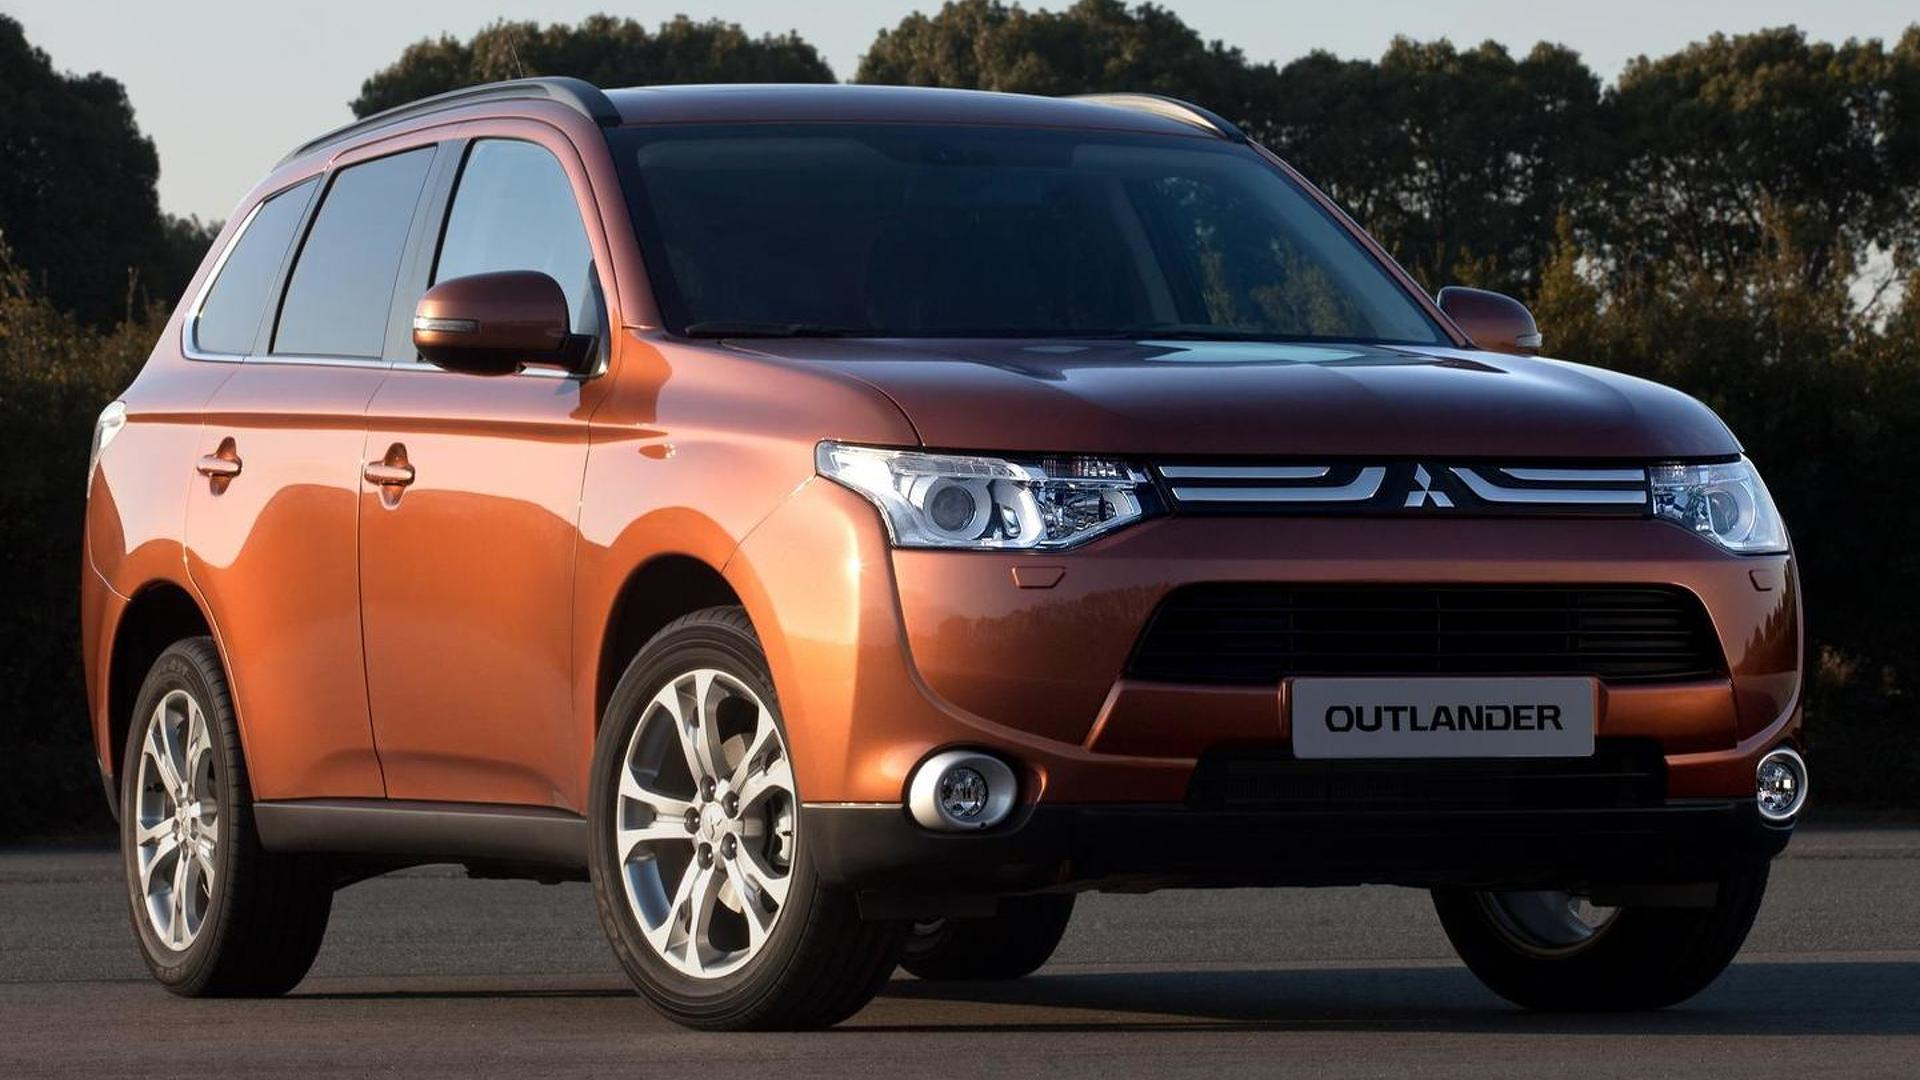 2013 Mitsubishi Outlander - first image released